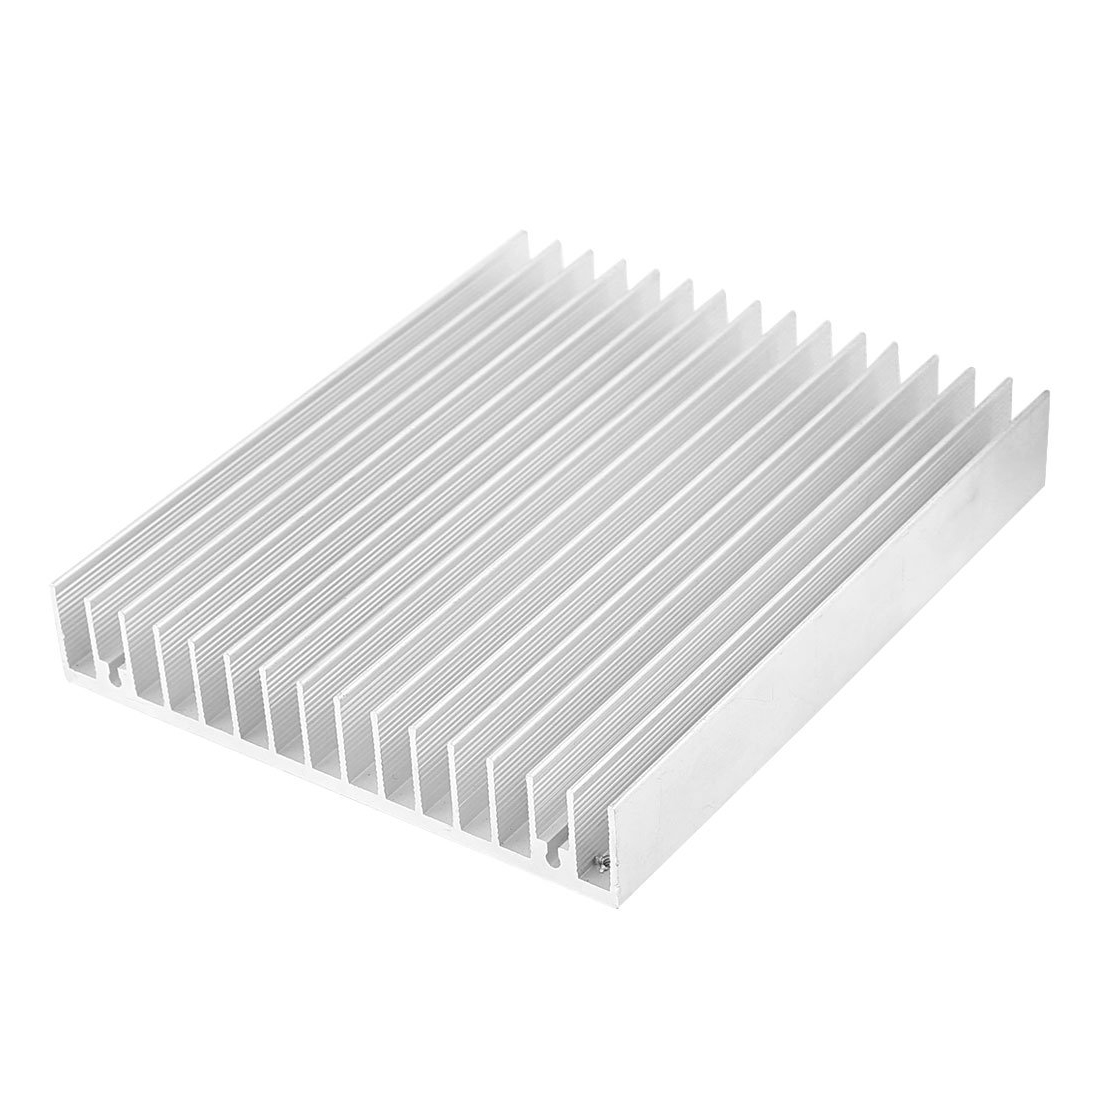 PROMOTION! Silver Tone Aluminium Heat Diffuse Heat Sink Cooling Fin 120x100x18mm